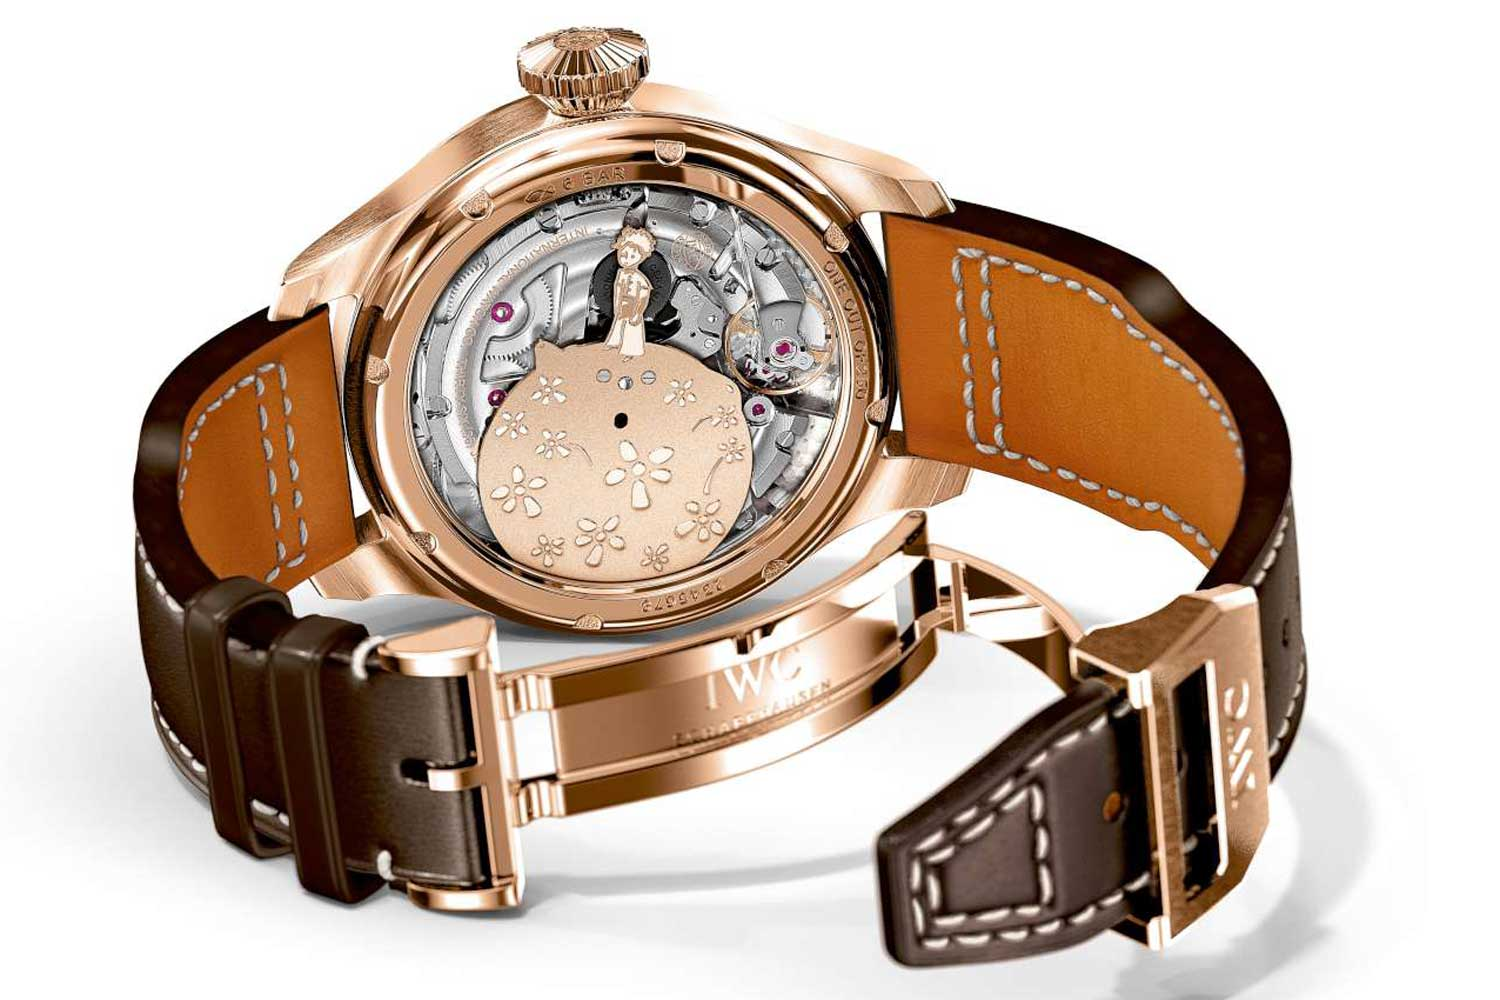 """The sapphire caseback of the """"Le Petit Prince"""" Big Pilot Annual Calendar with solid-gold rotor in the shape of the little prince standing on his asteroid."""